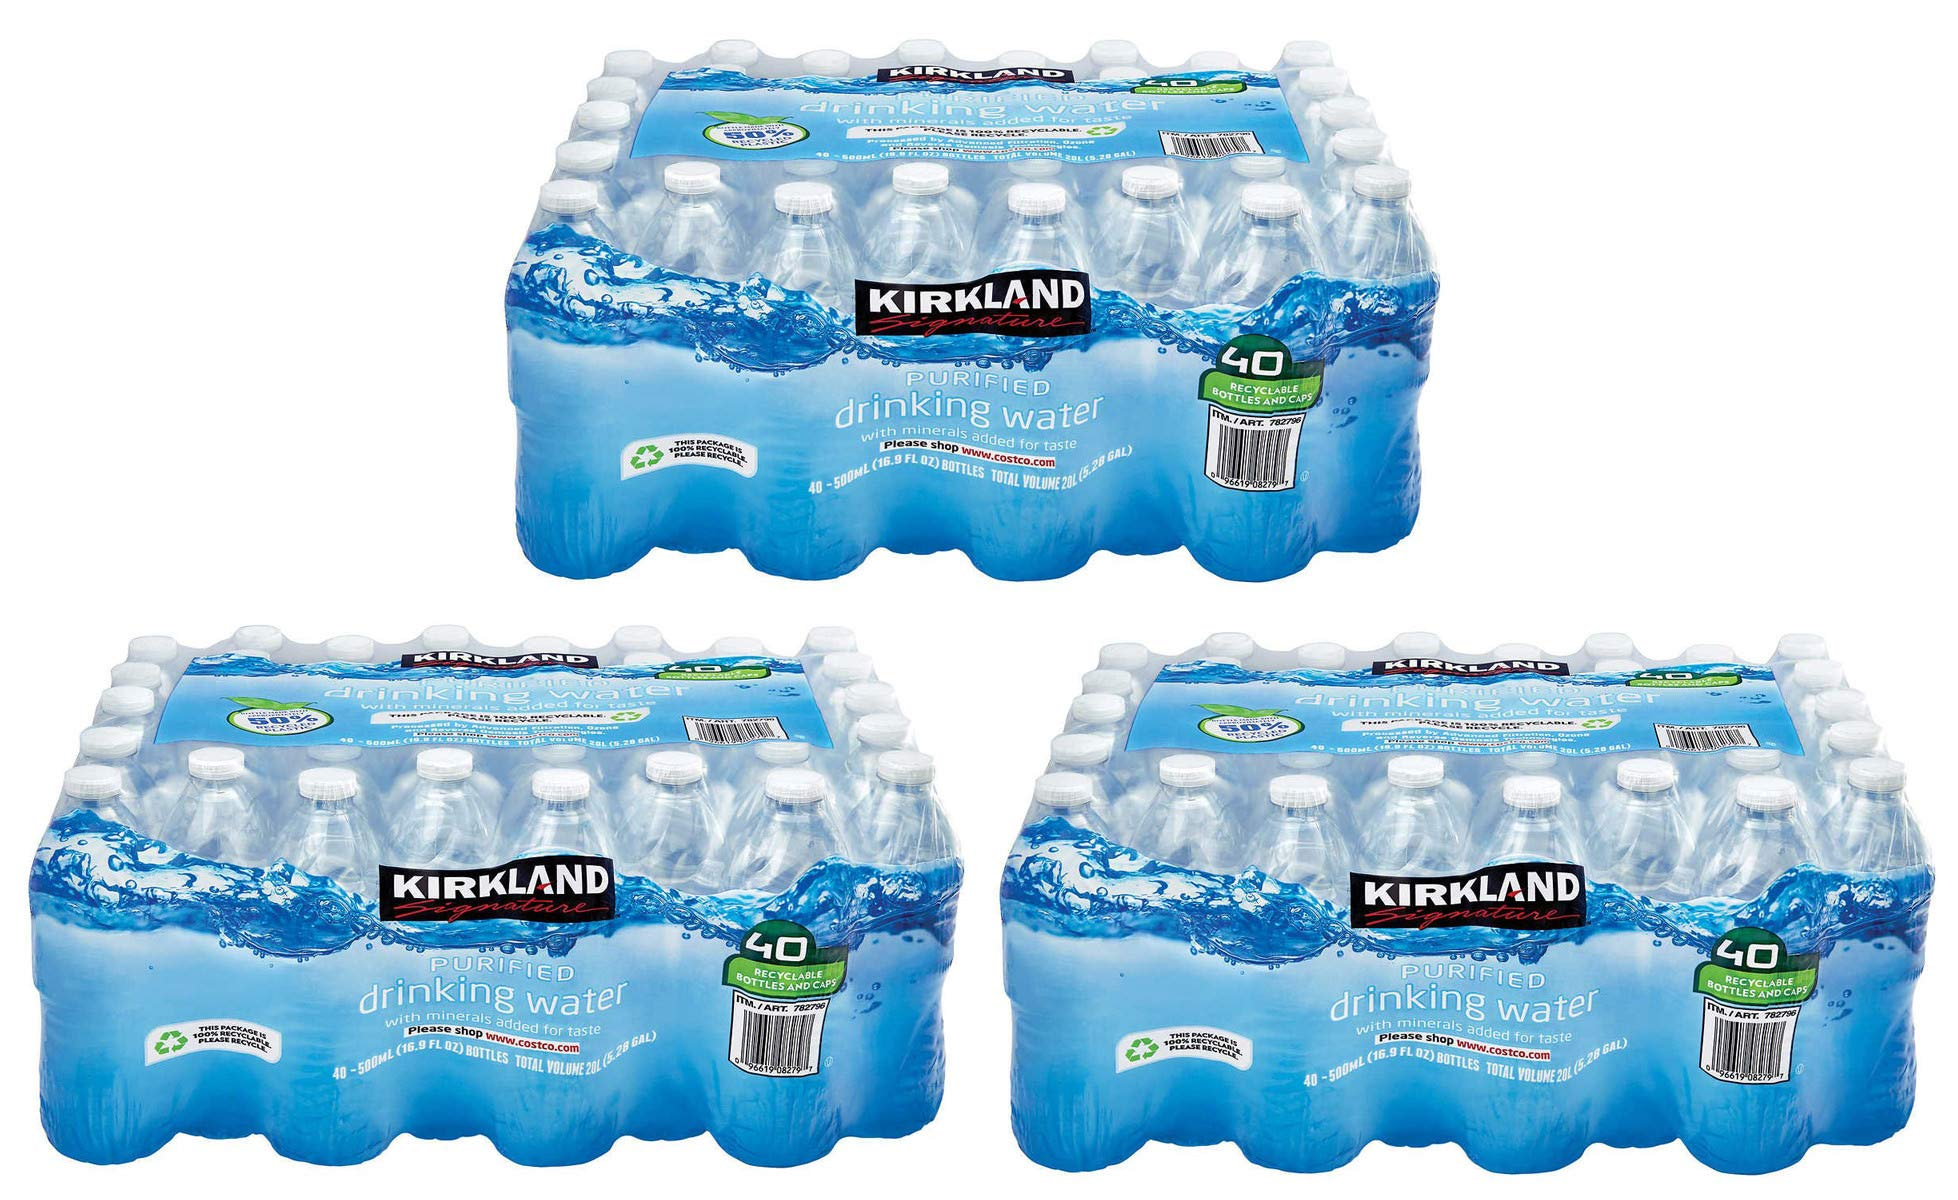 MNJDHCHG Purified Drinking Water, 16.9 Ounce, 3 Pack of 40 Bottles